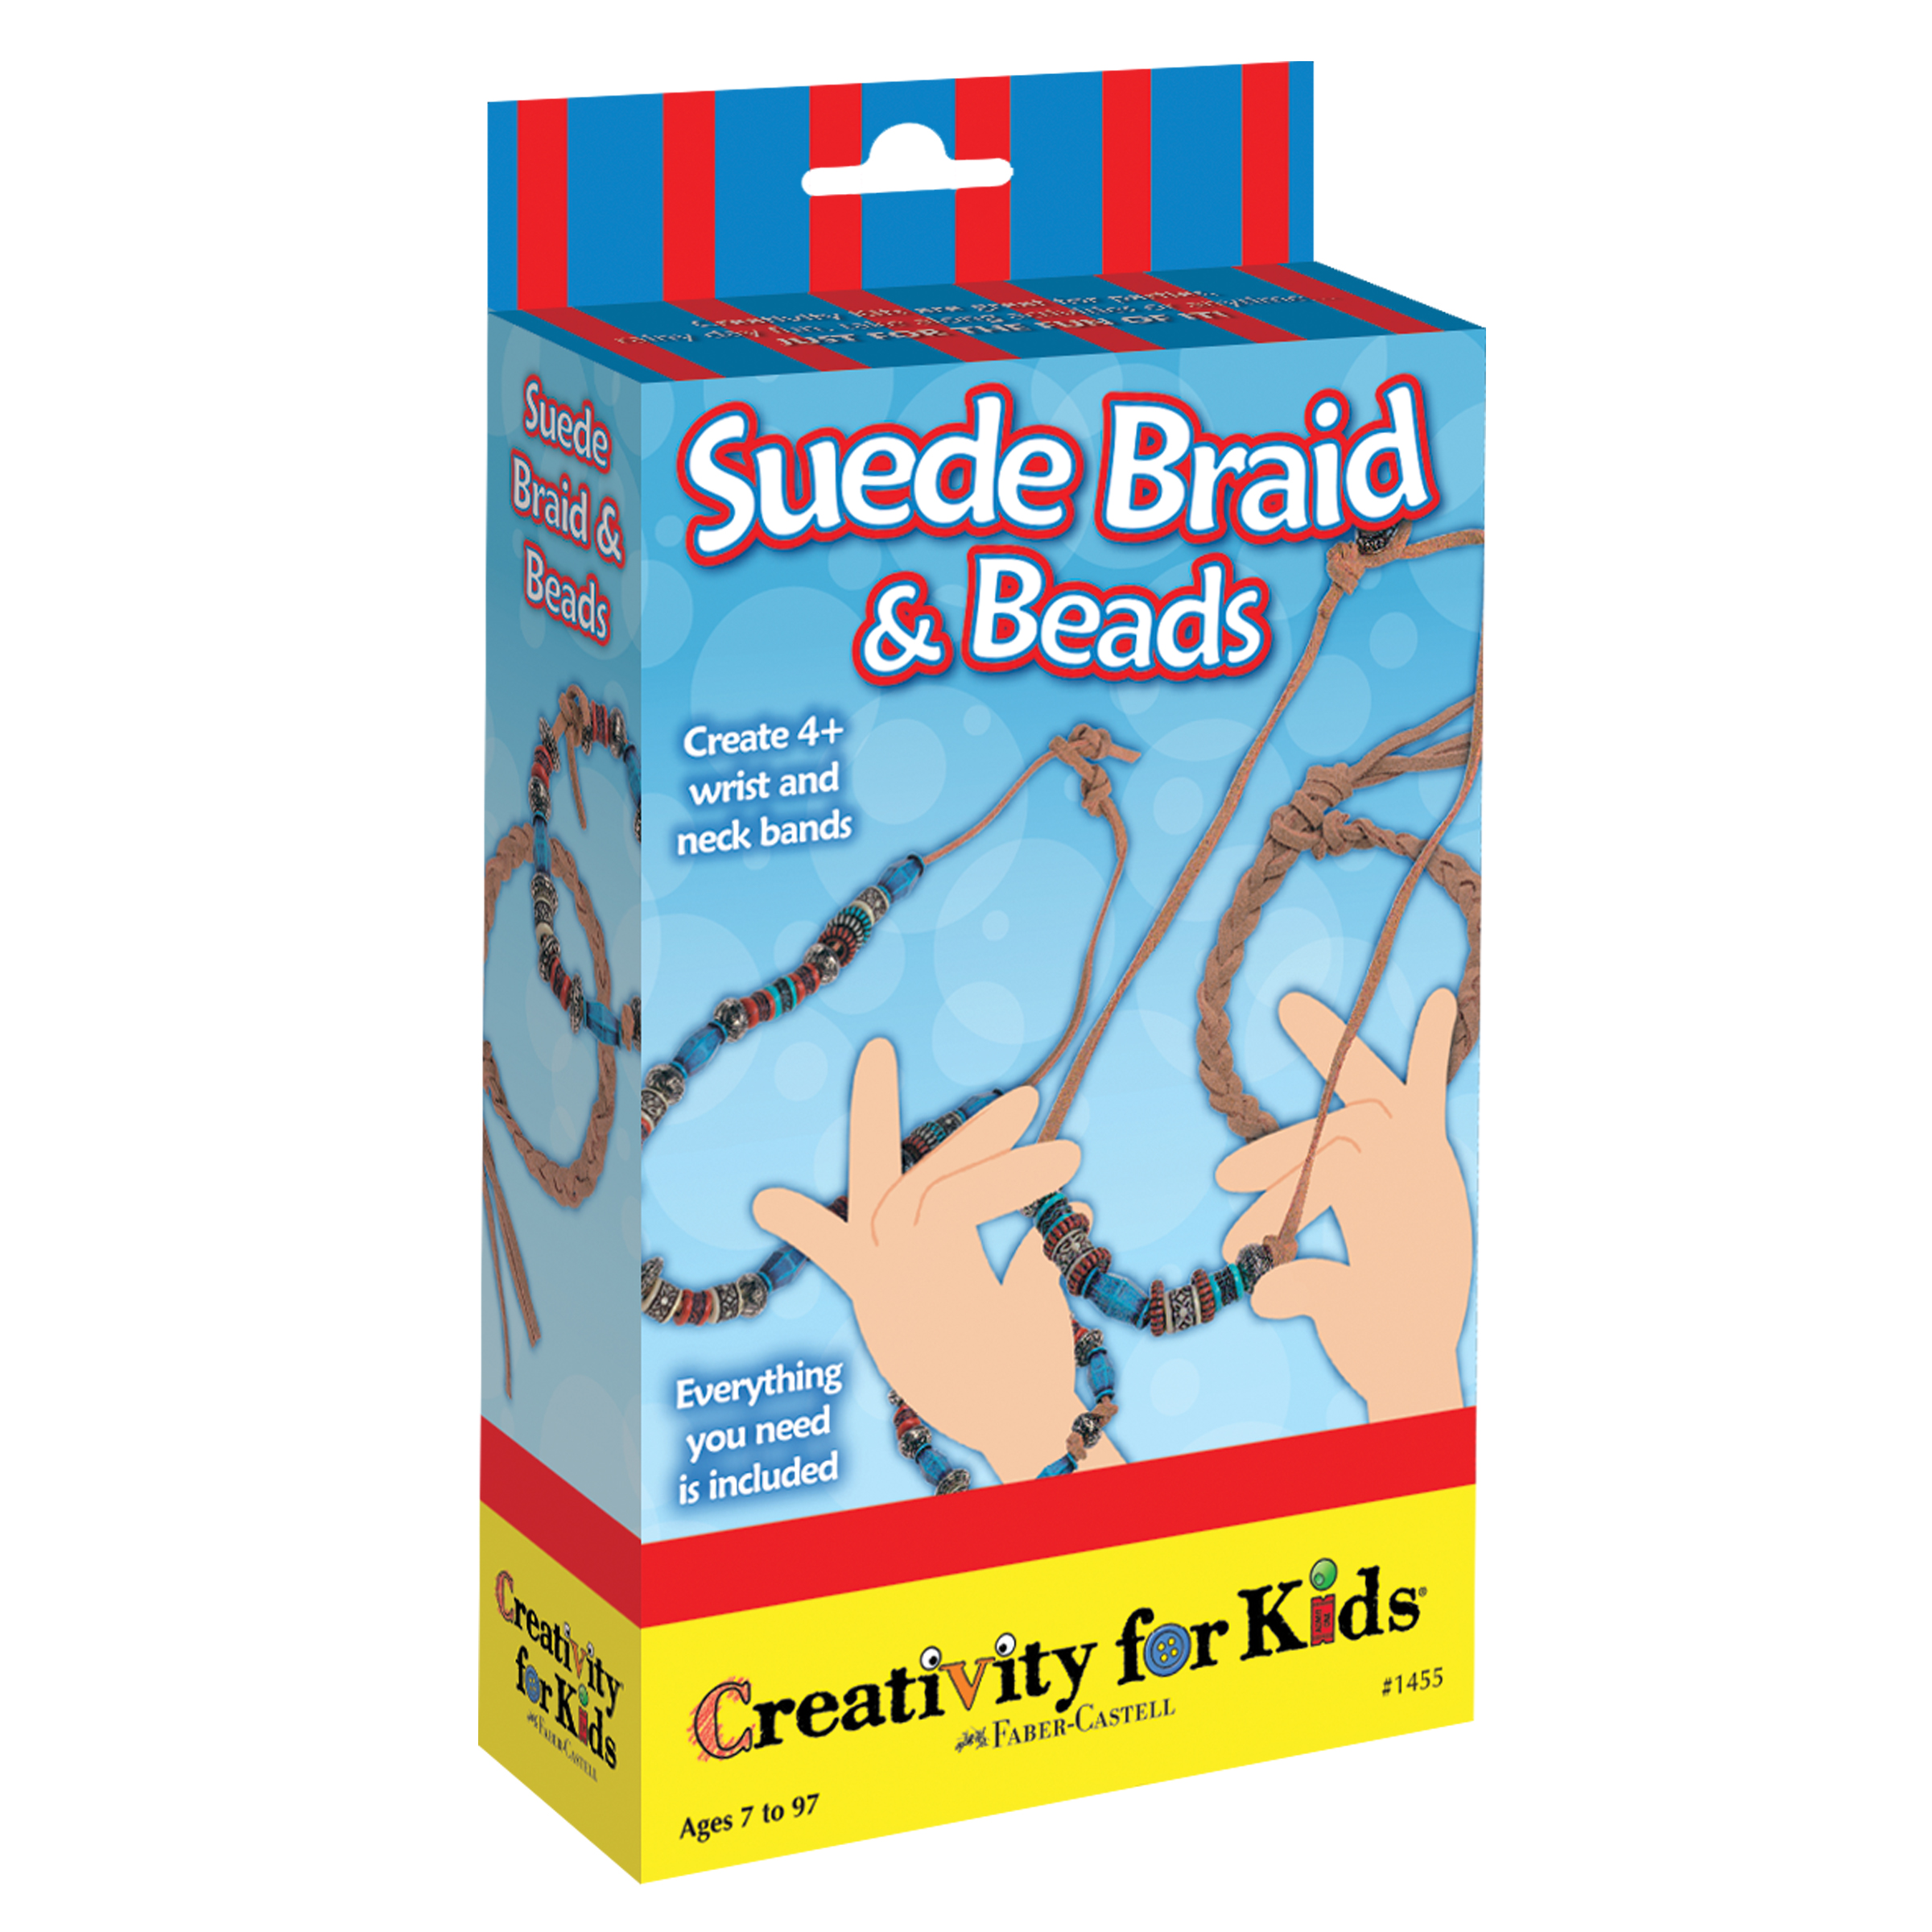 Creativity for Kids Suede Braid & Beads